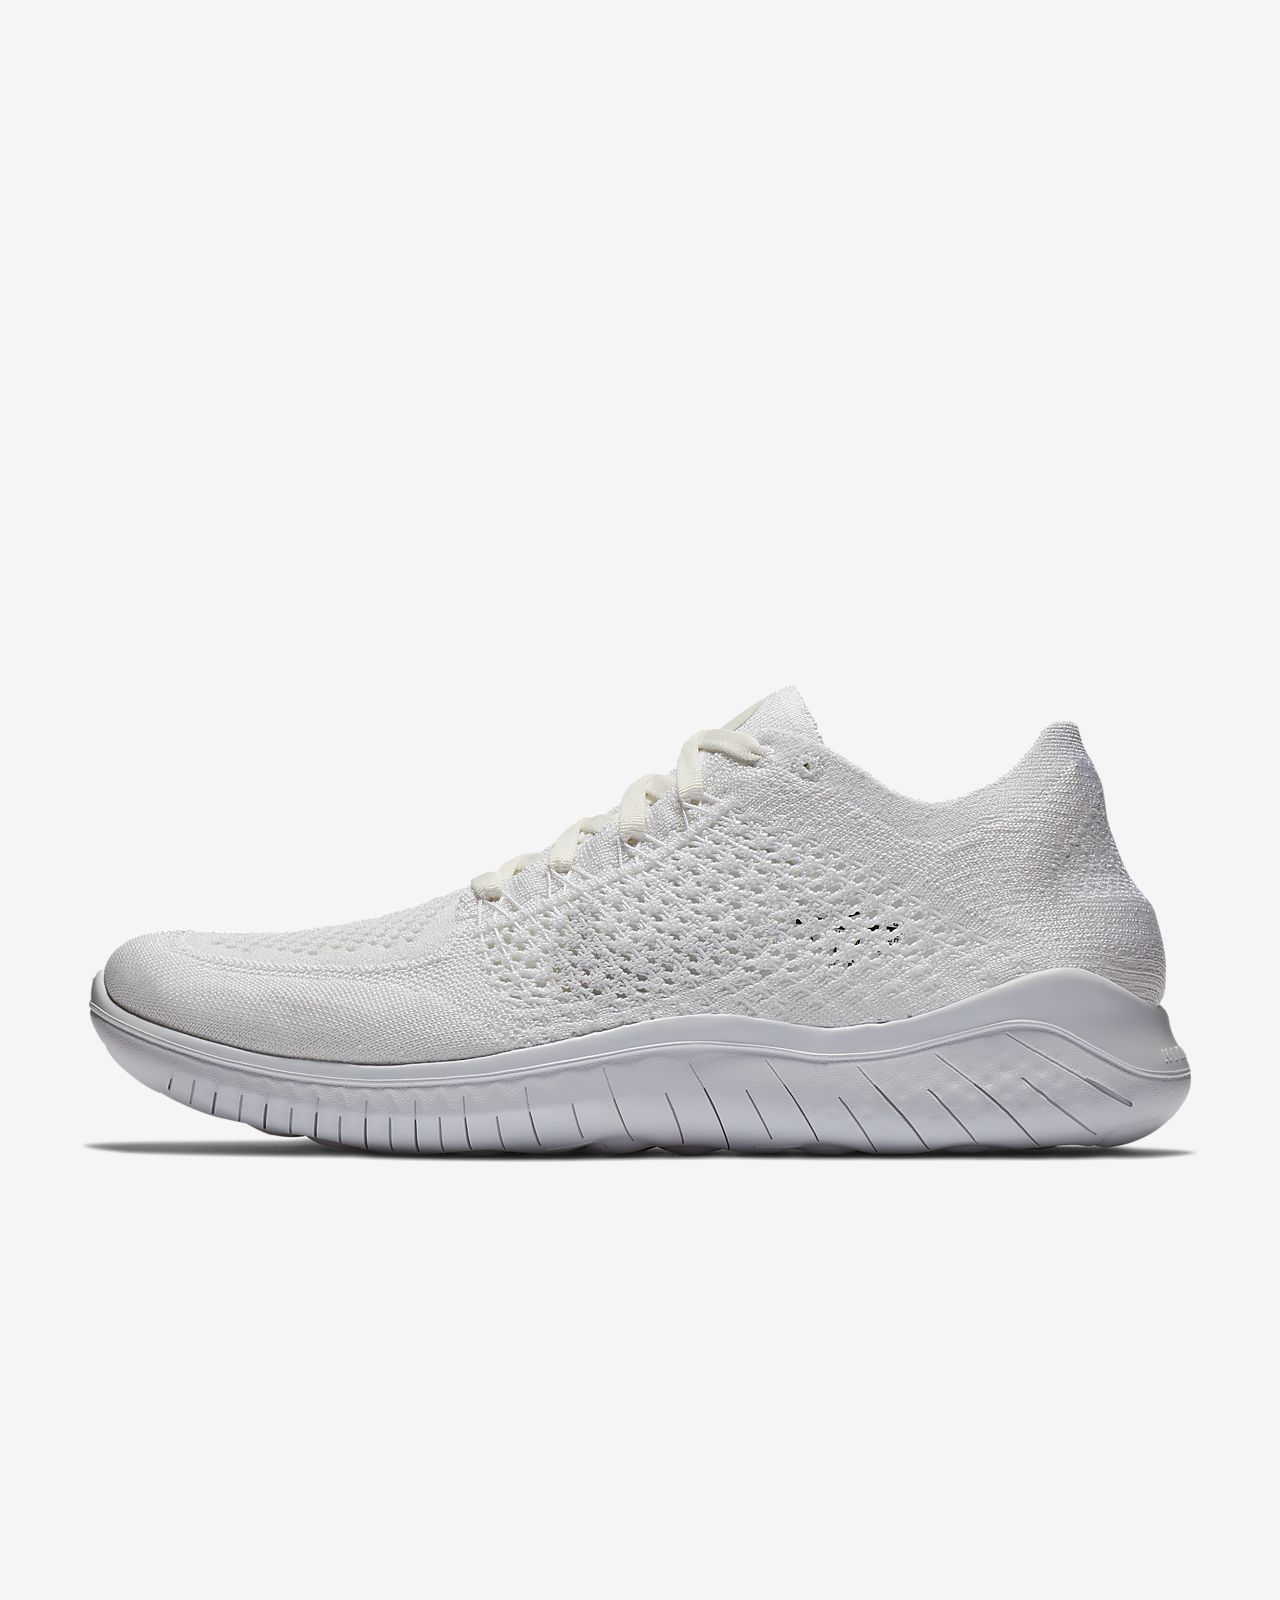 buy popular 729a5 75c0d ... Nike Free RN Flyknit 2018 Men s Running Shoe